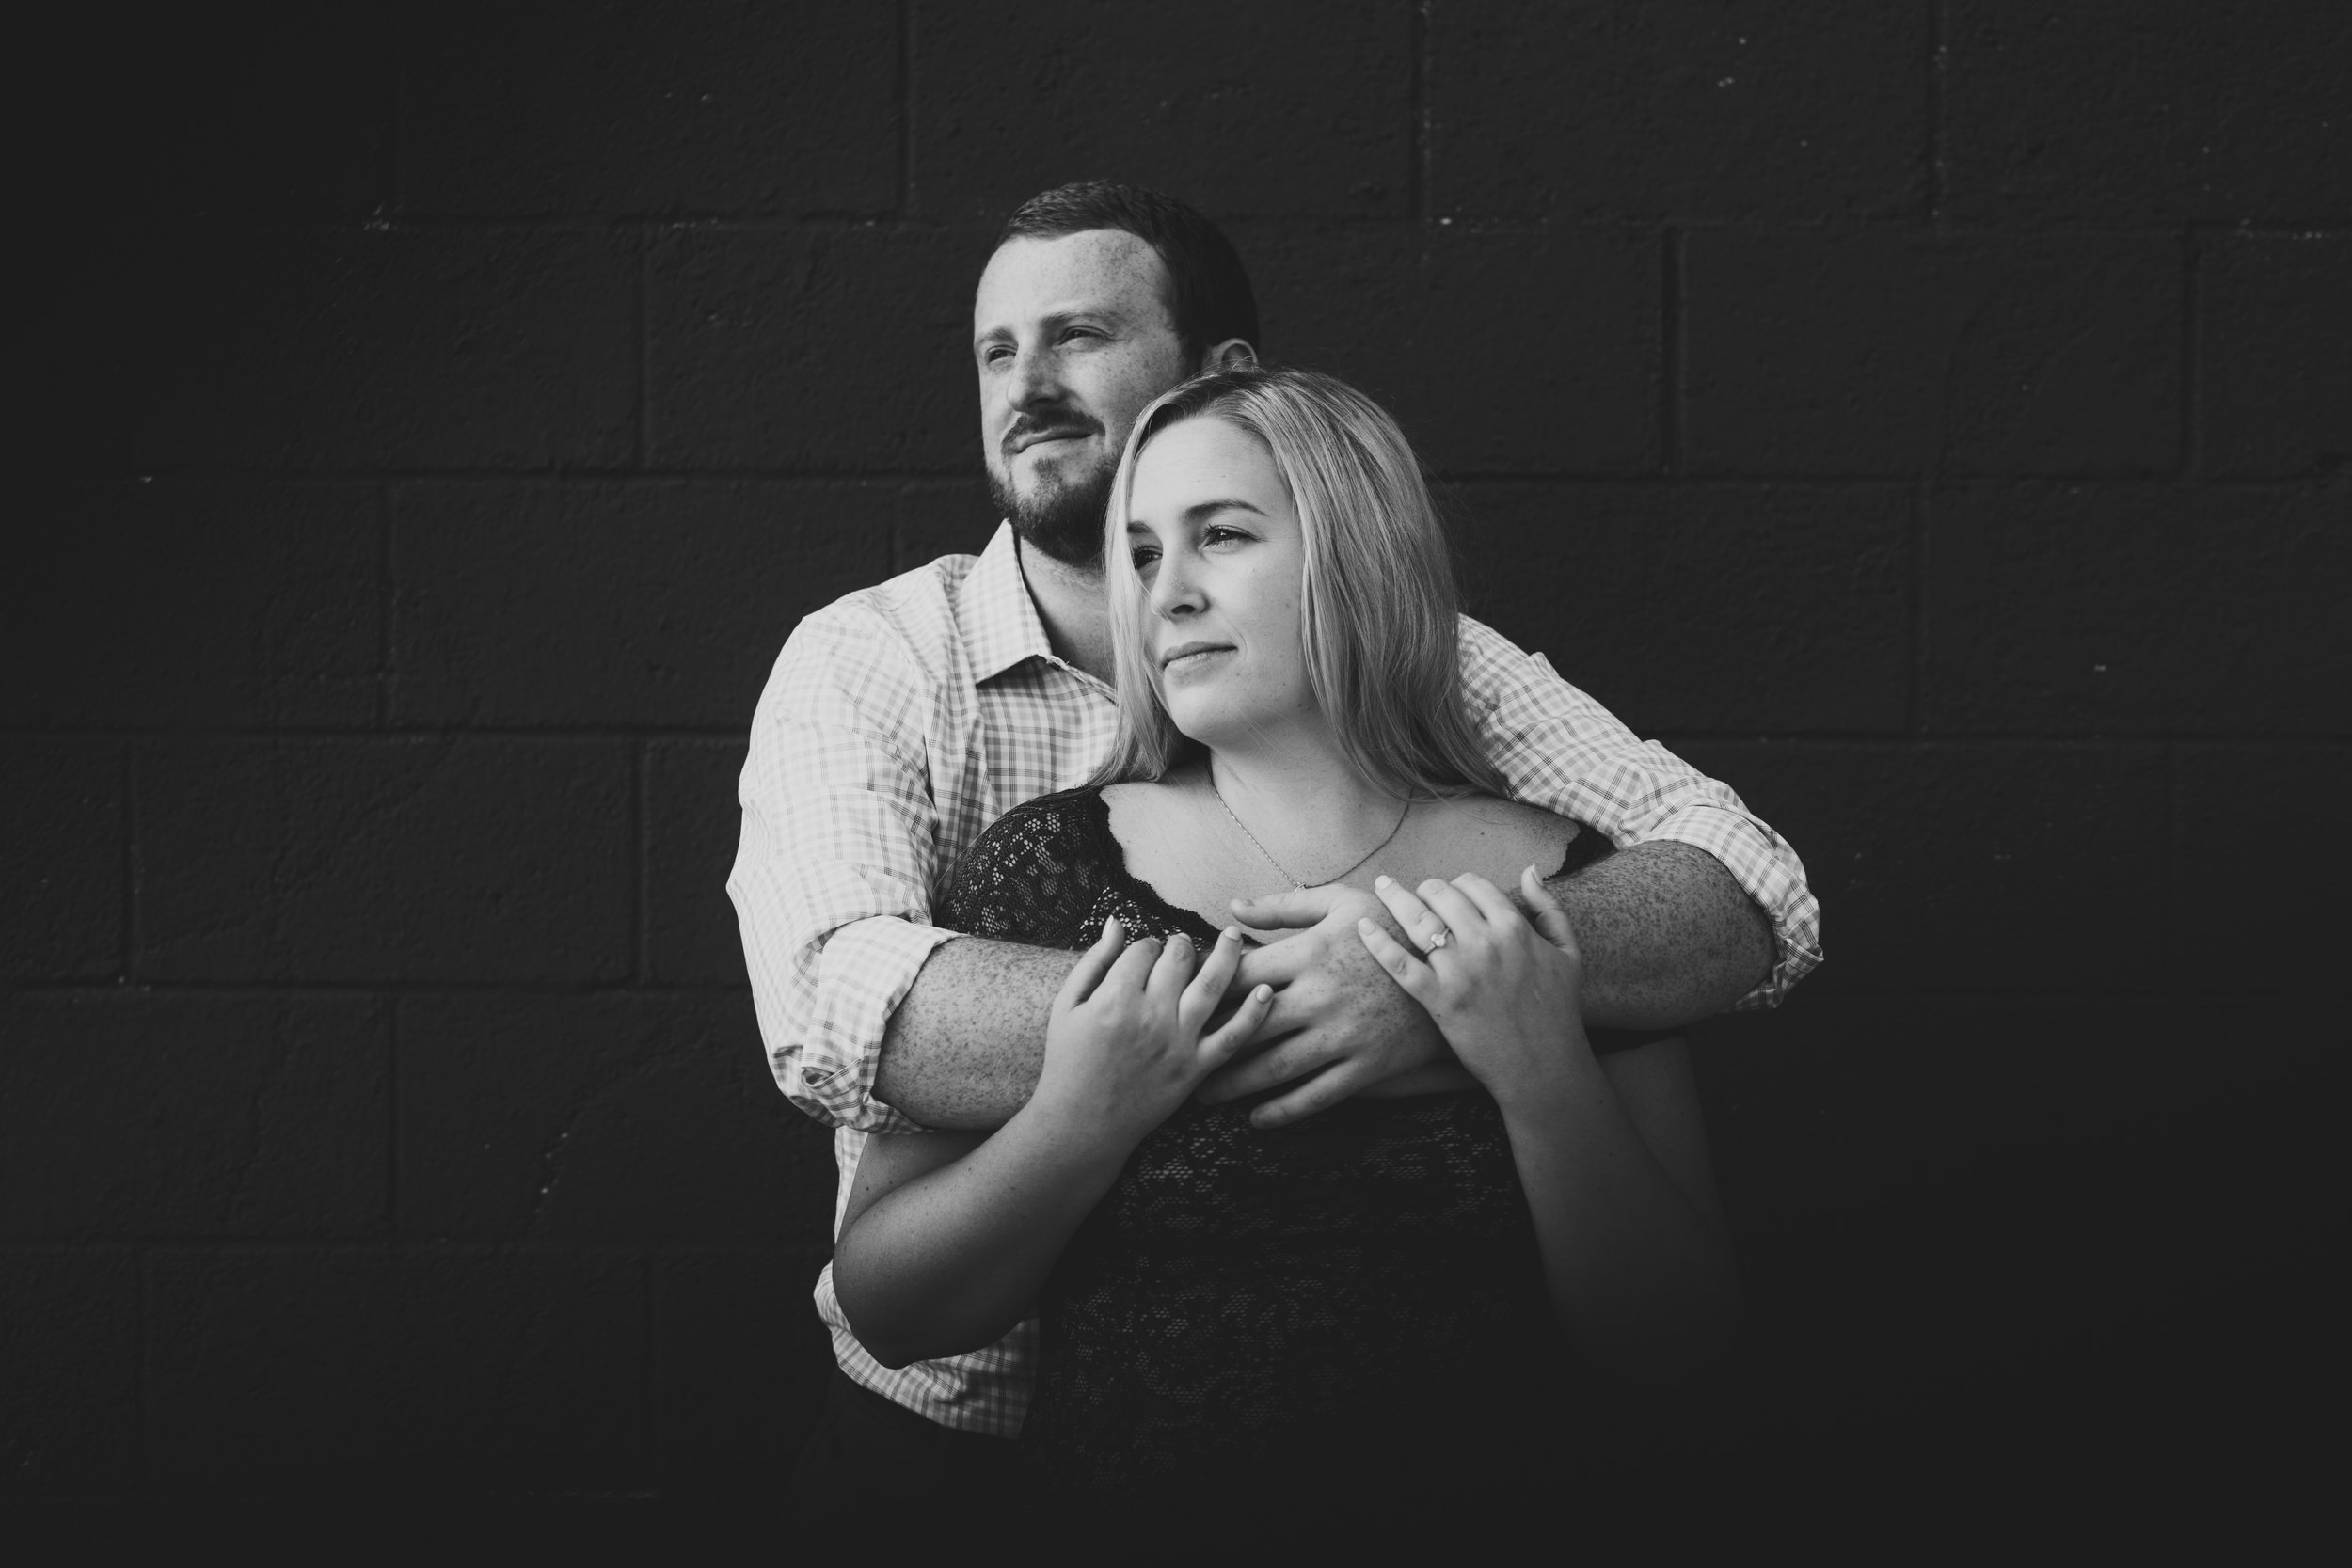 moody engagement shoot in the city